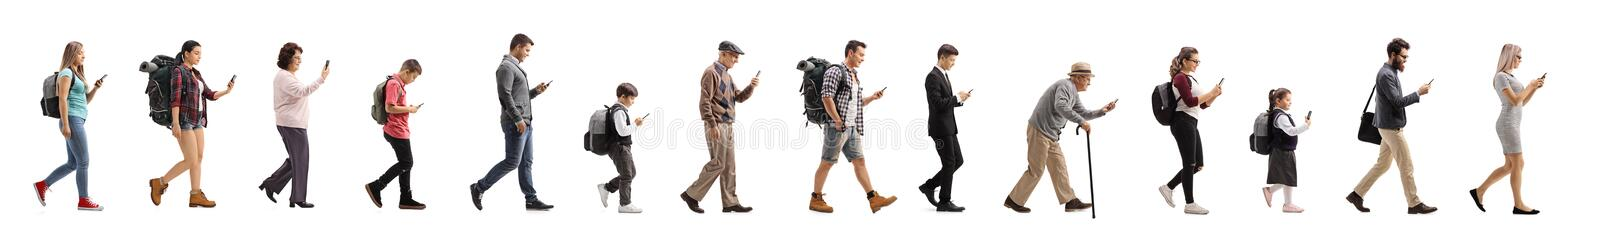 Long queue of people walking and using a mobile phone royalty free stock photo